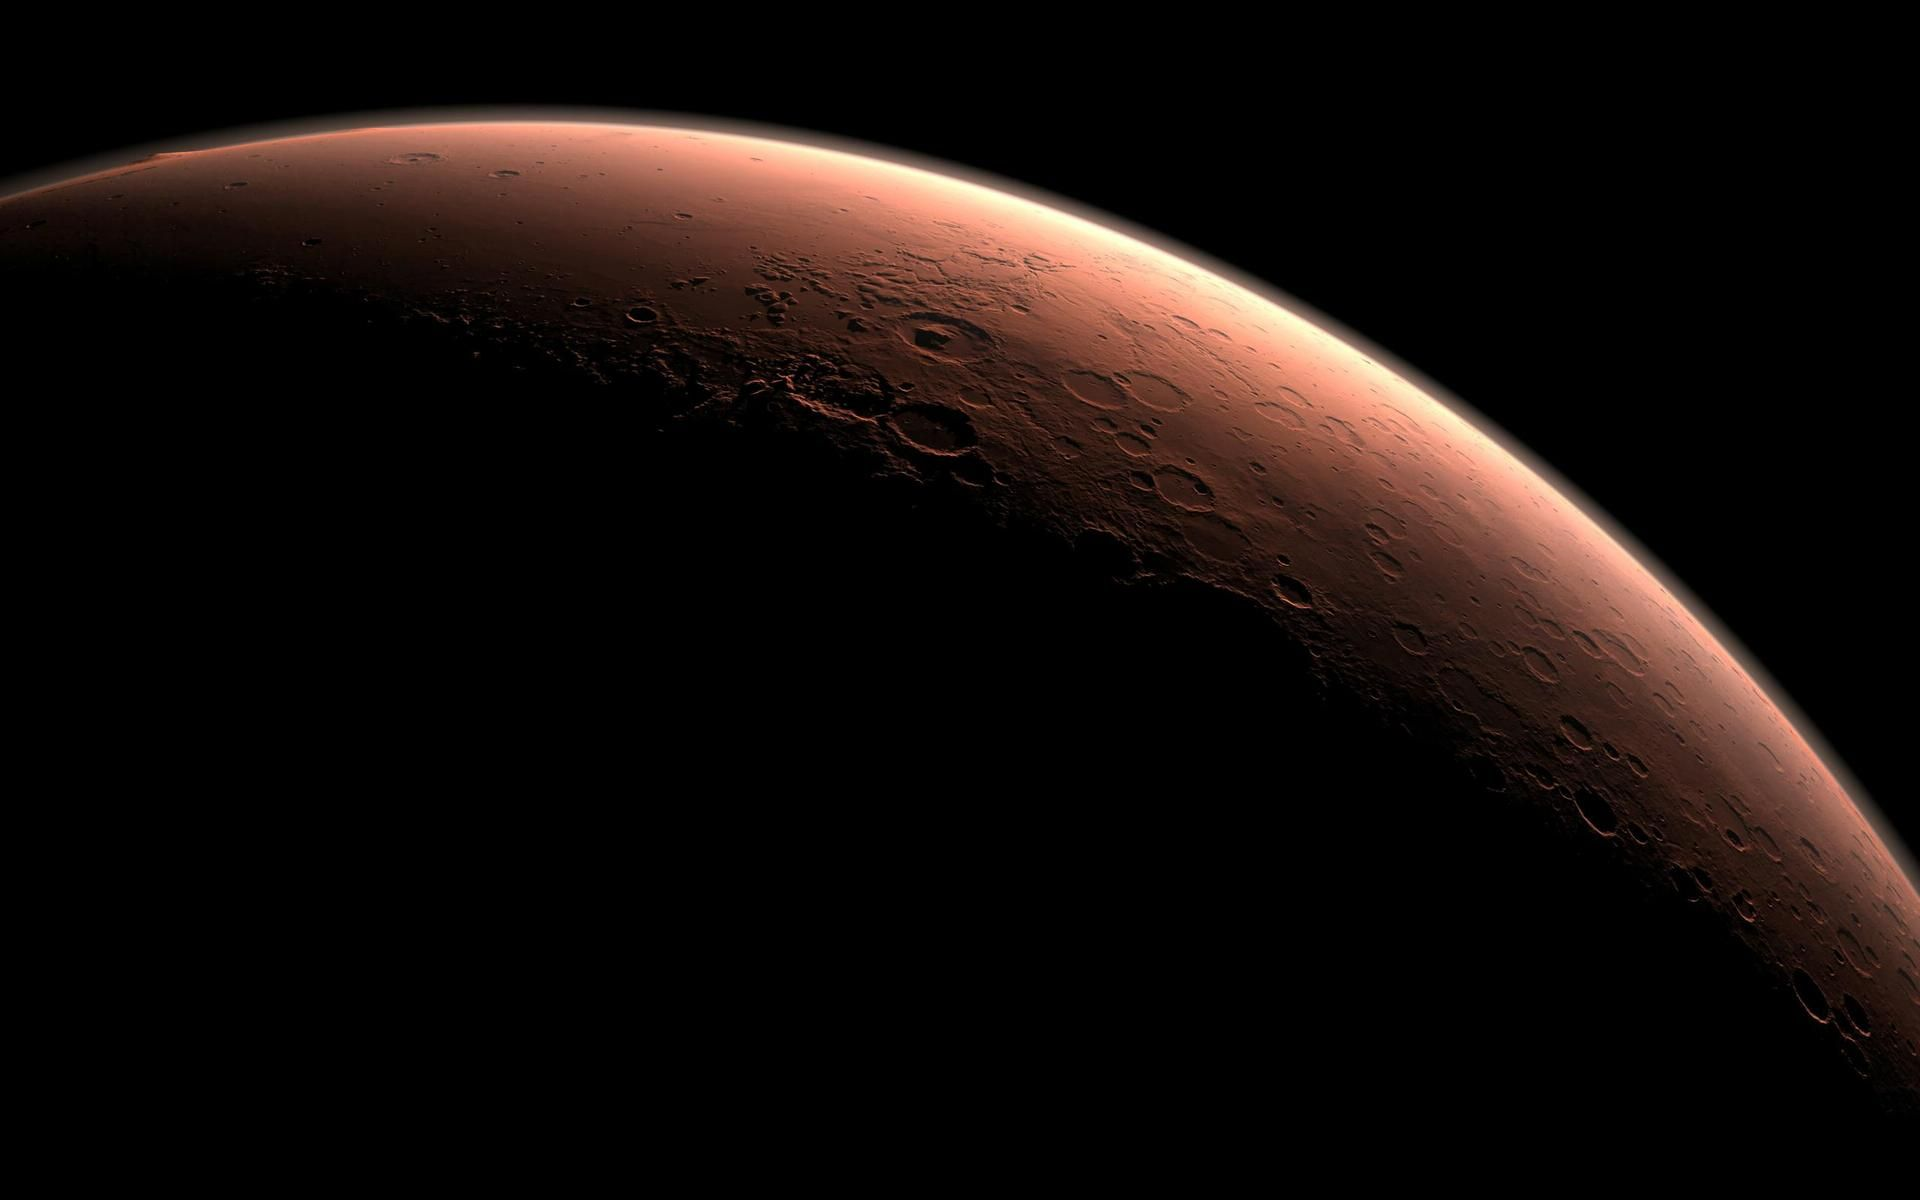 Planet Mars Wallpapers - Top Free Planet Mars Backgrounds